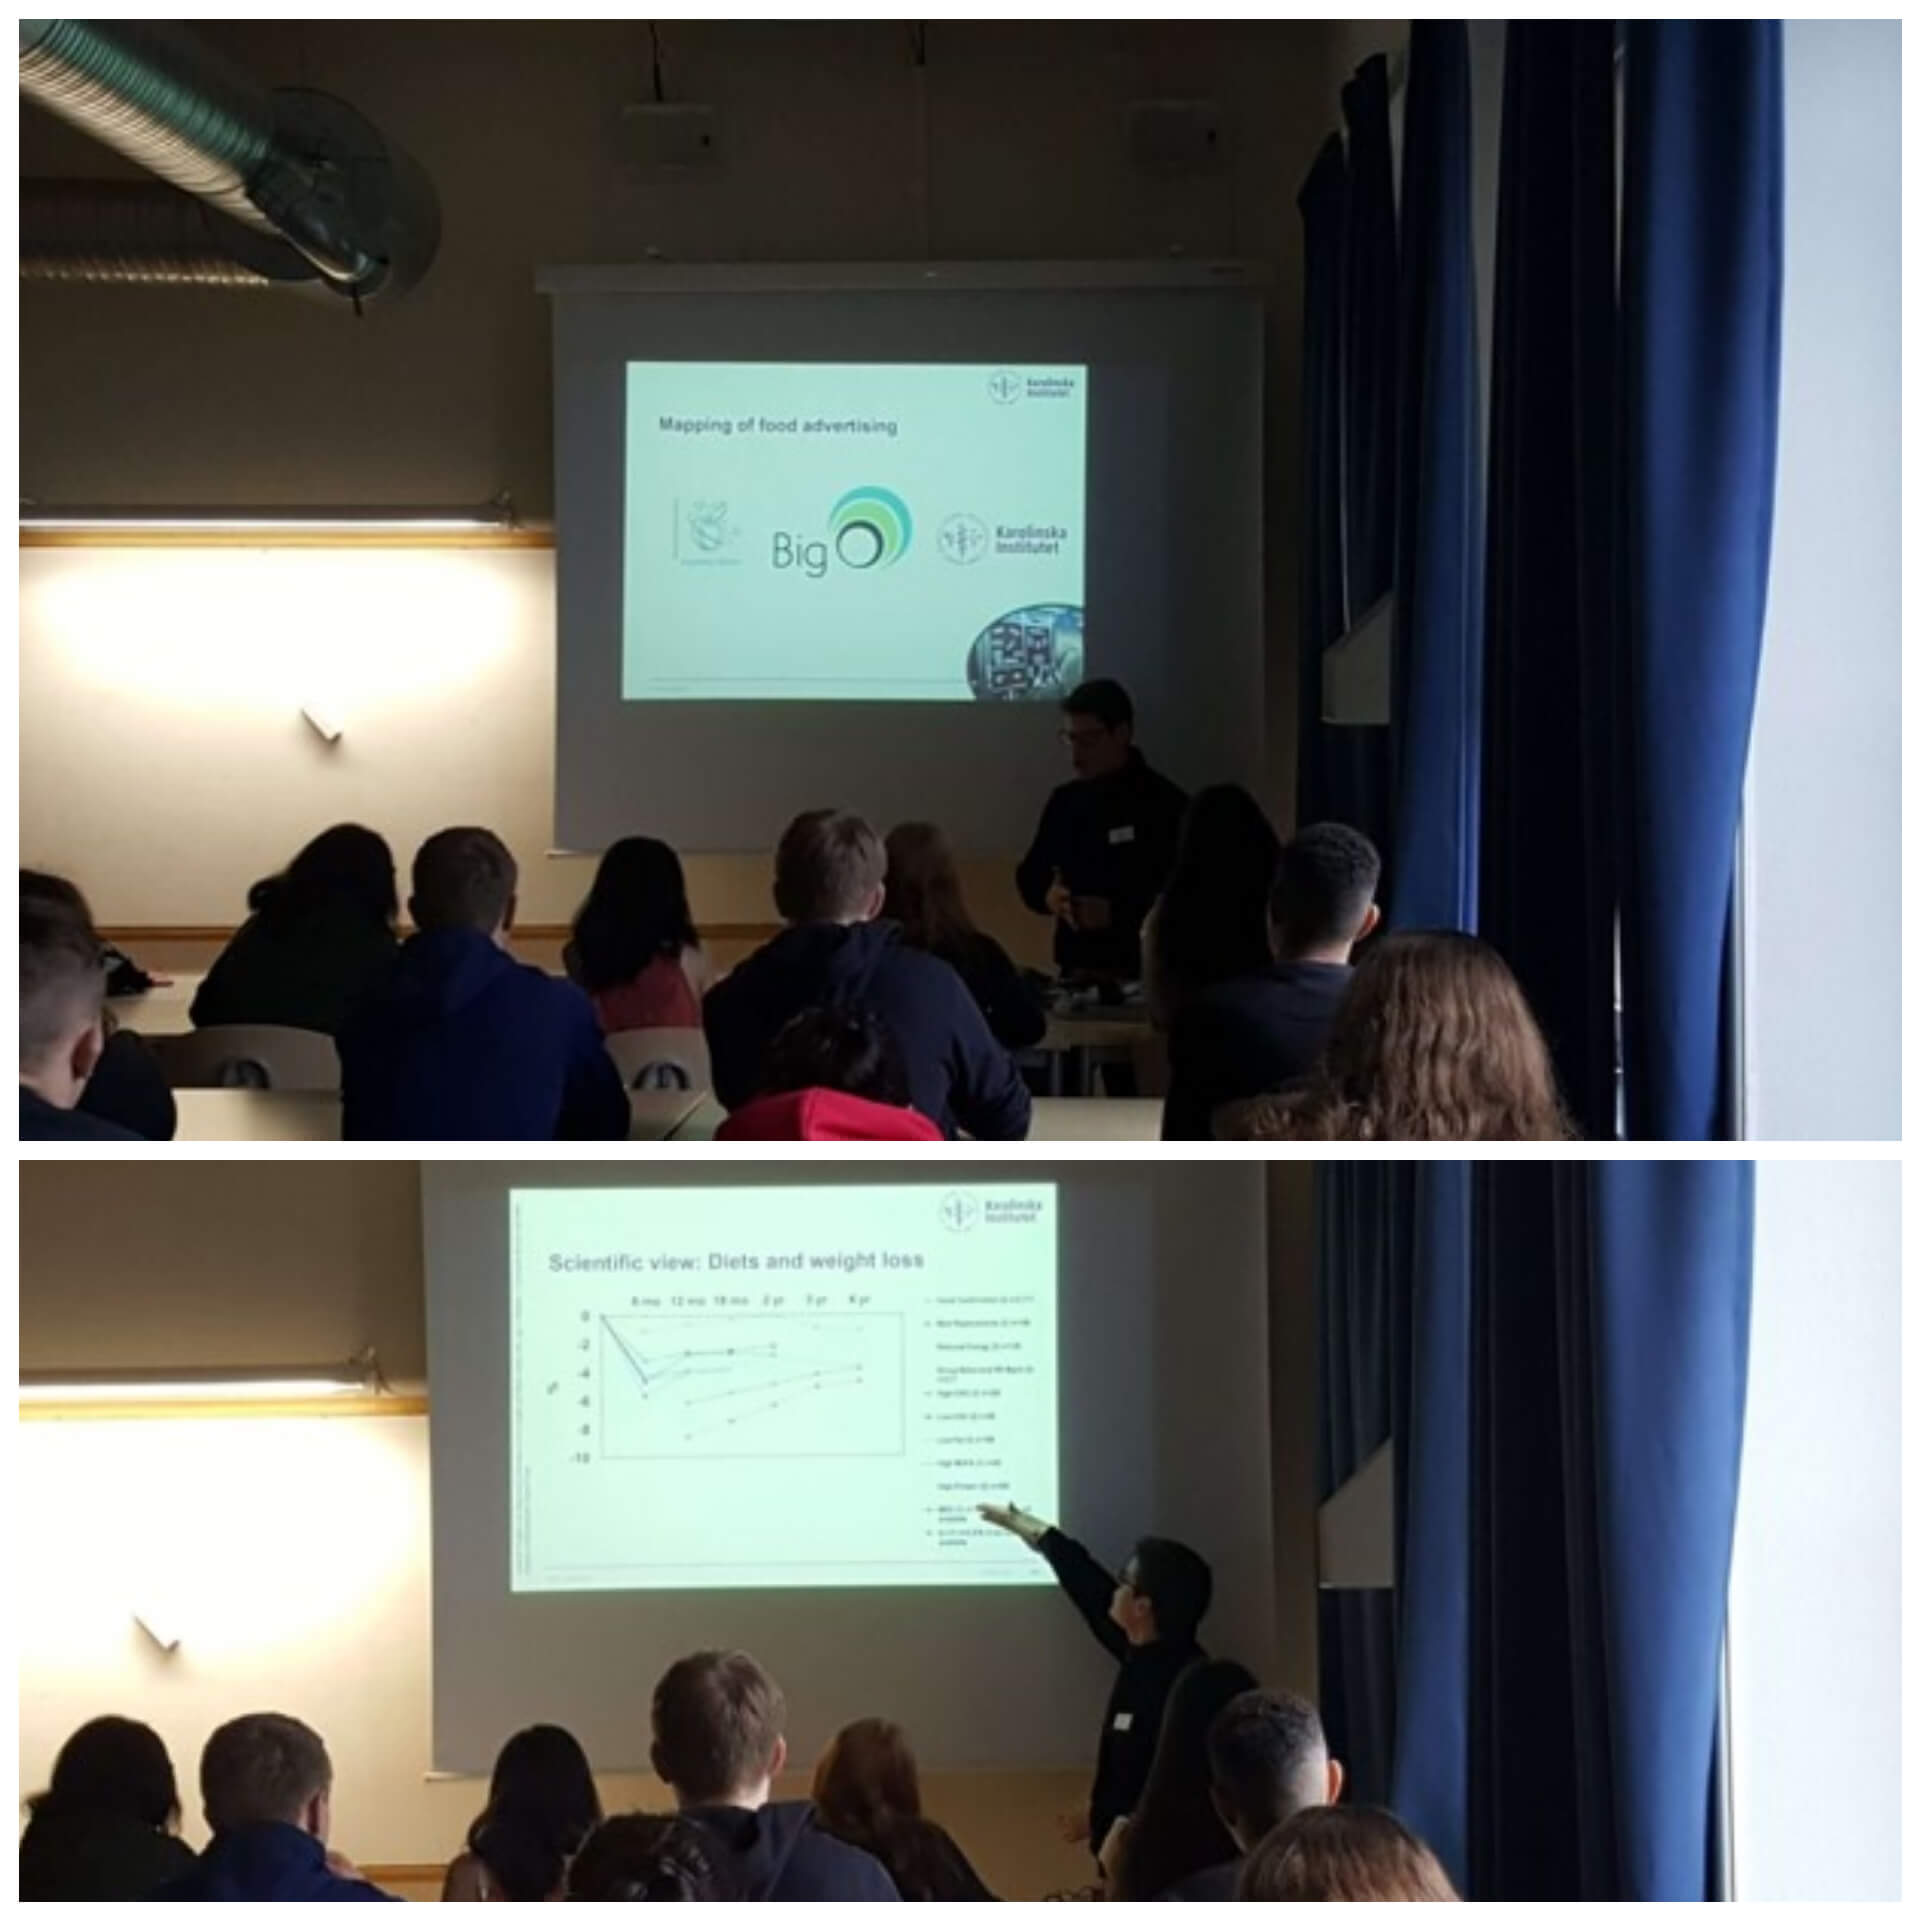 KI researchers discussed the challenge of childhood obesity with students of IES in Stockholm, Sweden